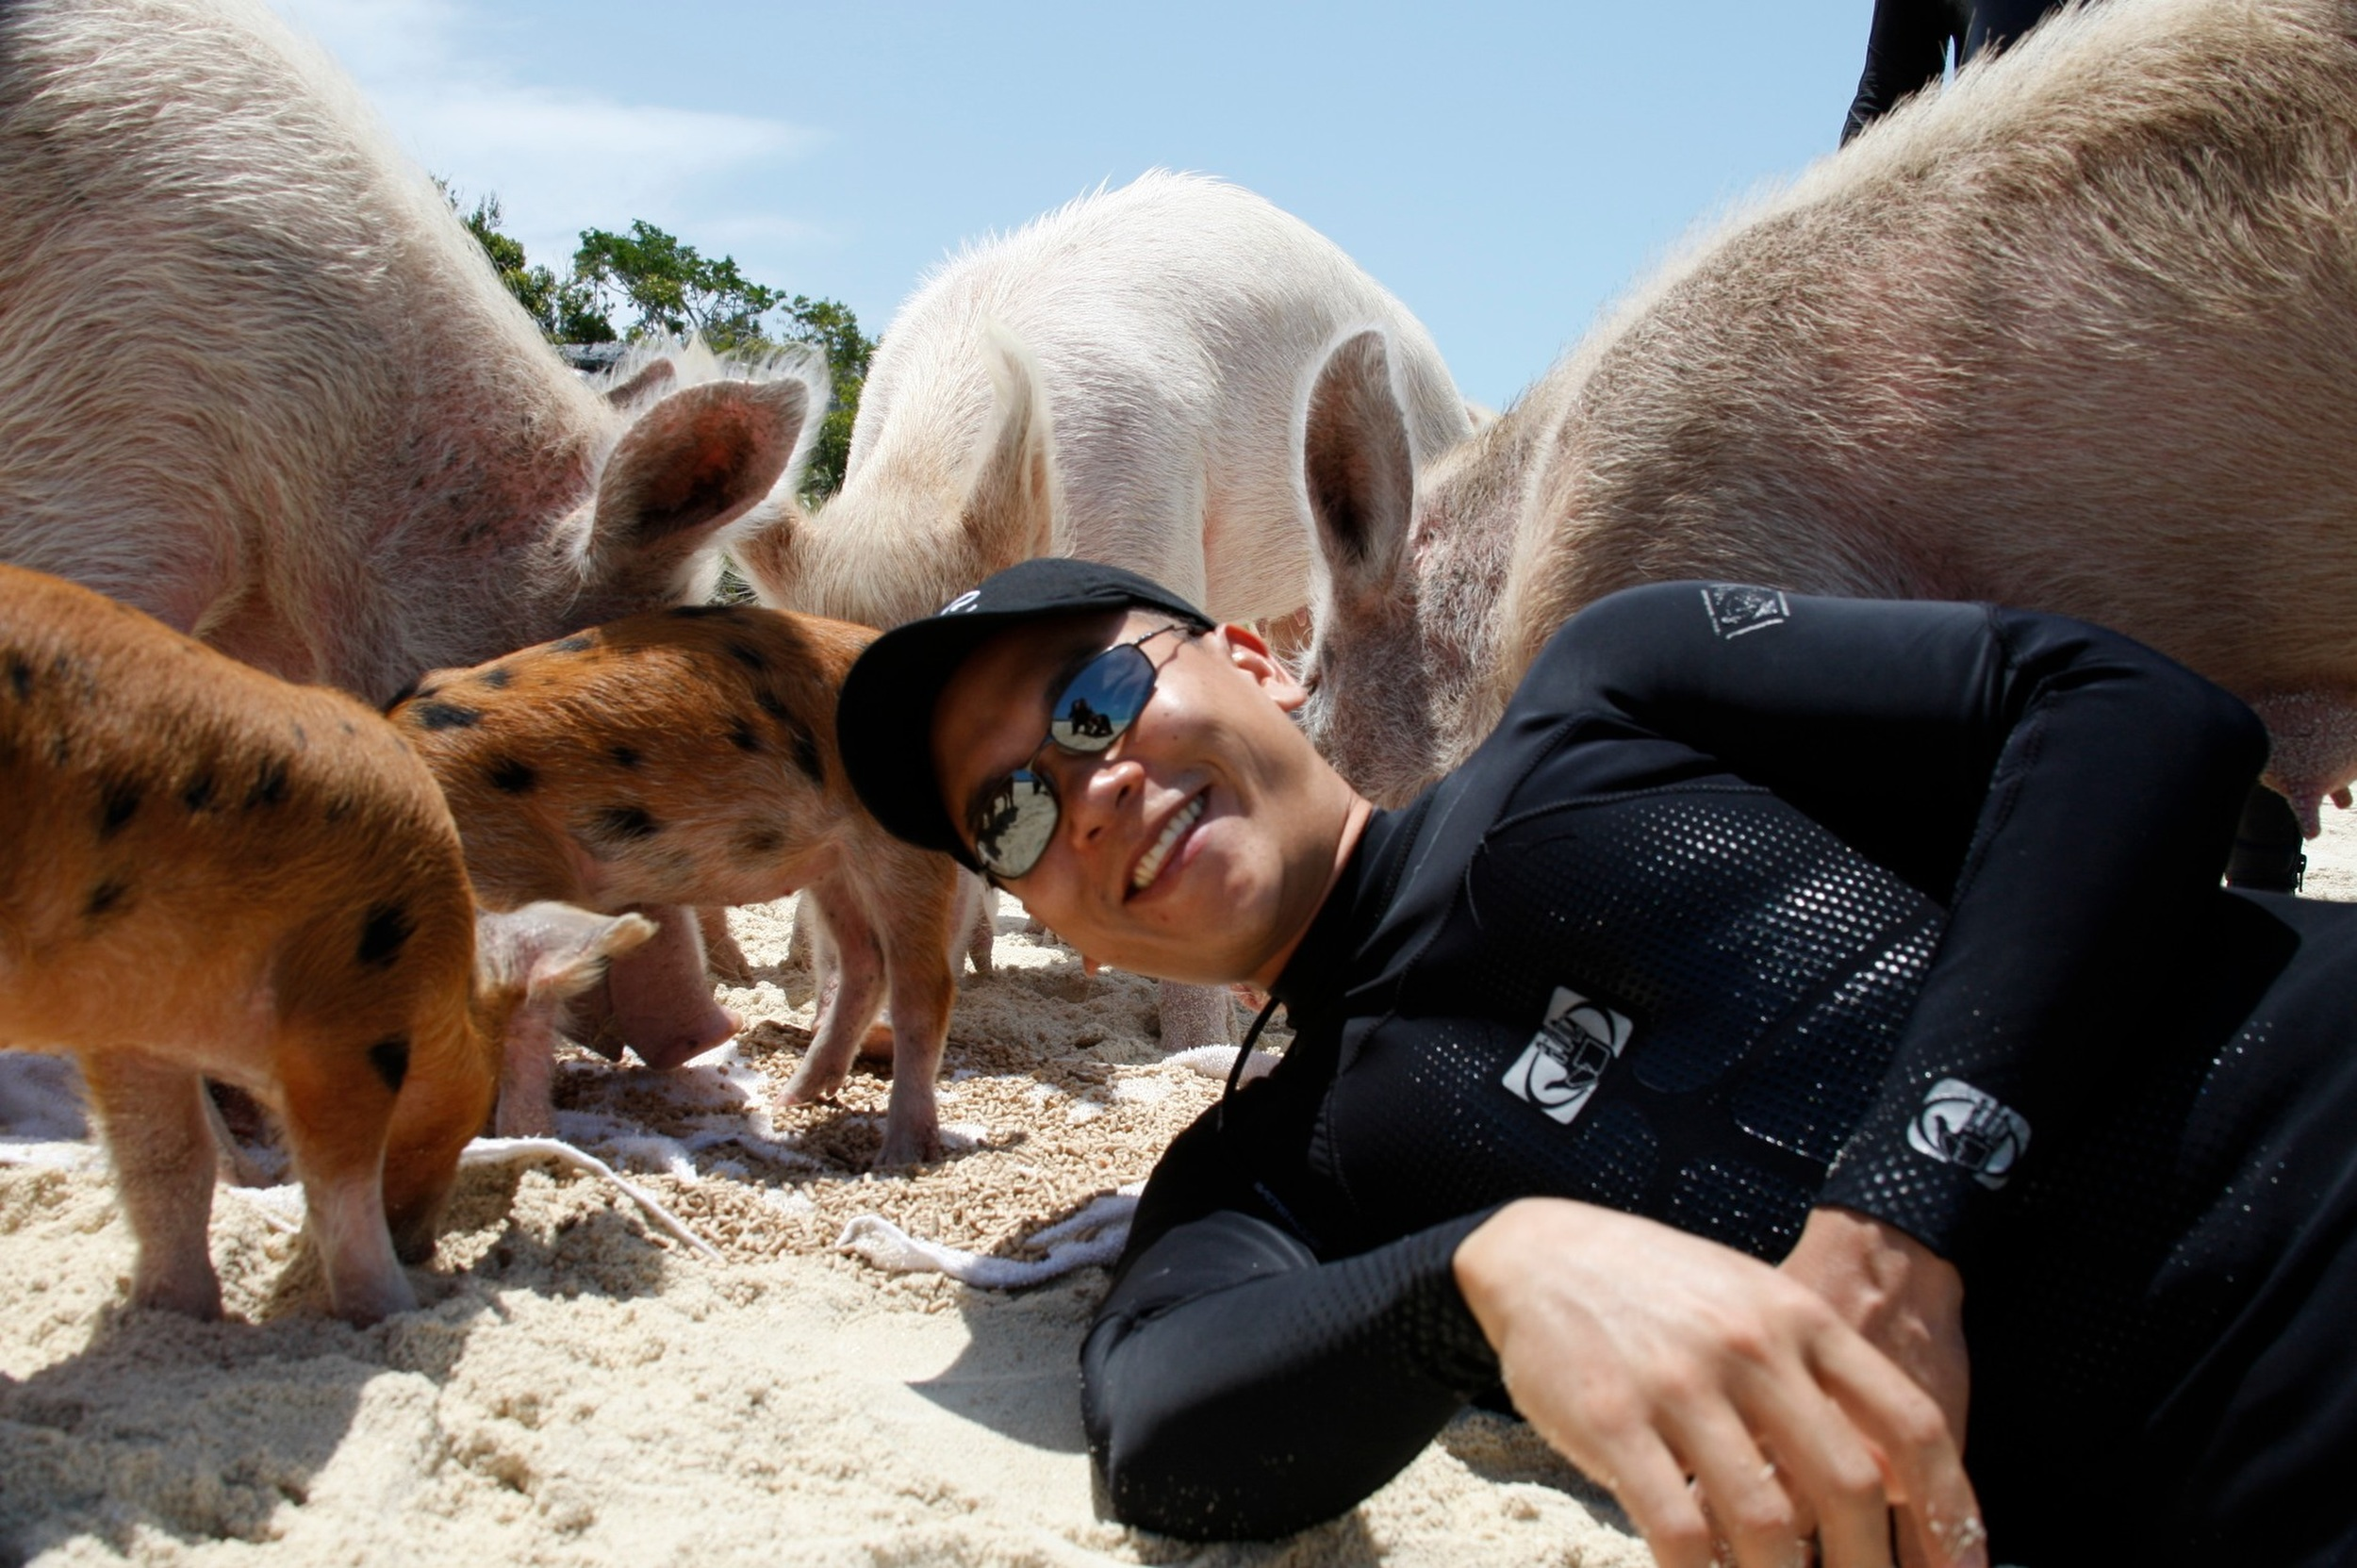 With the pigs of Big Major Cay, Bahamas